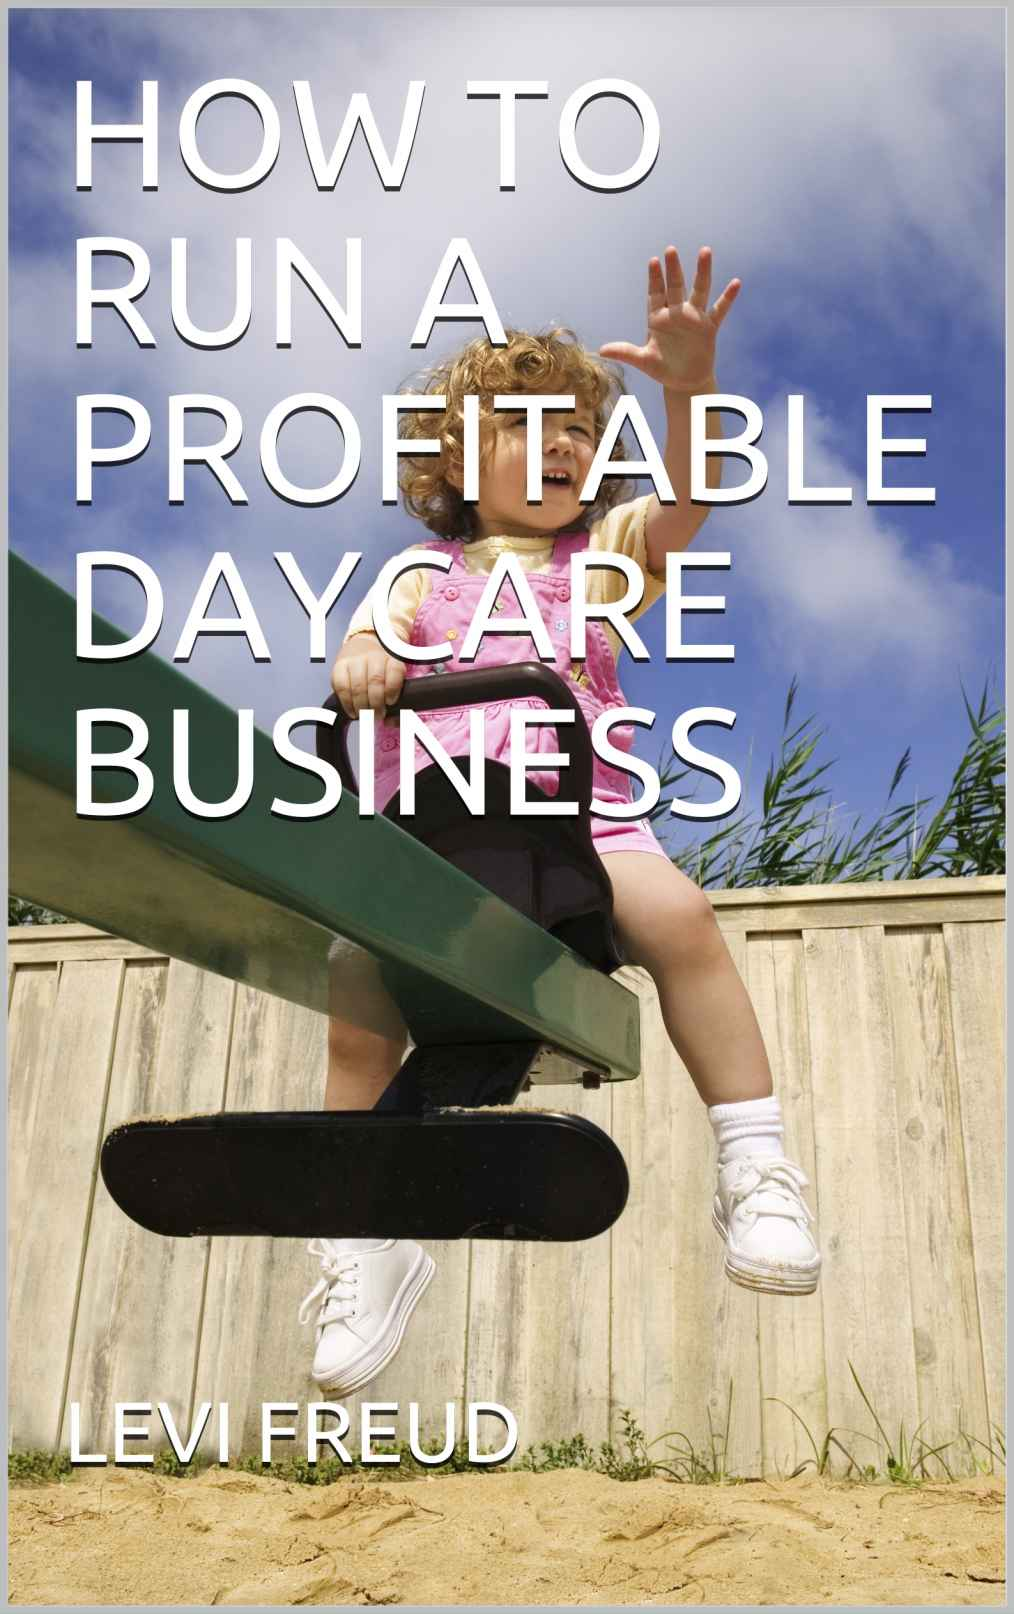 How to run a profitable daycare business